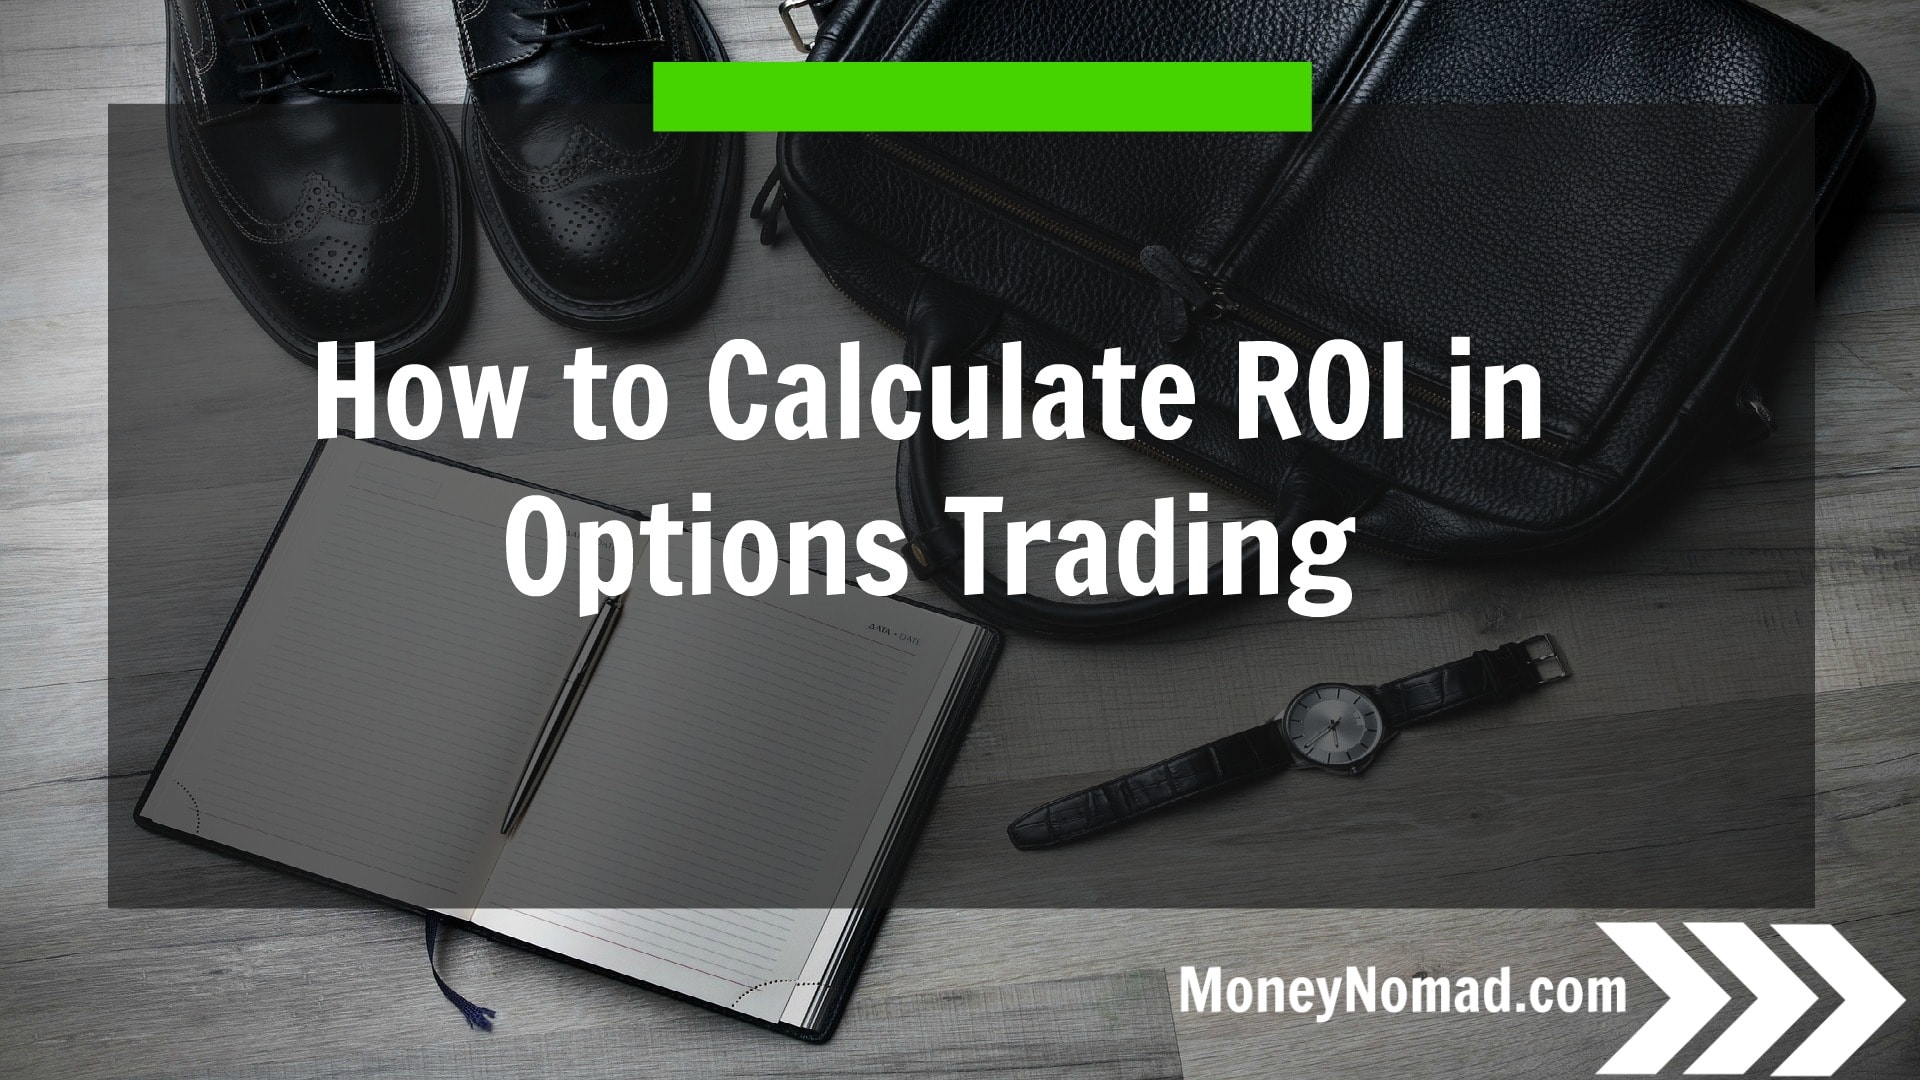 Option trading brokerage calculation